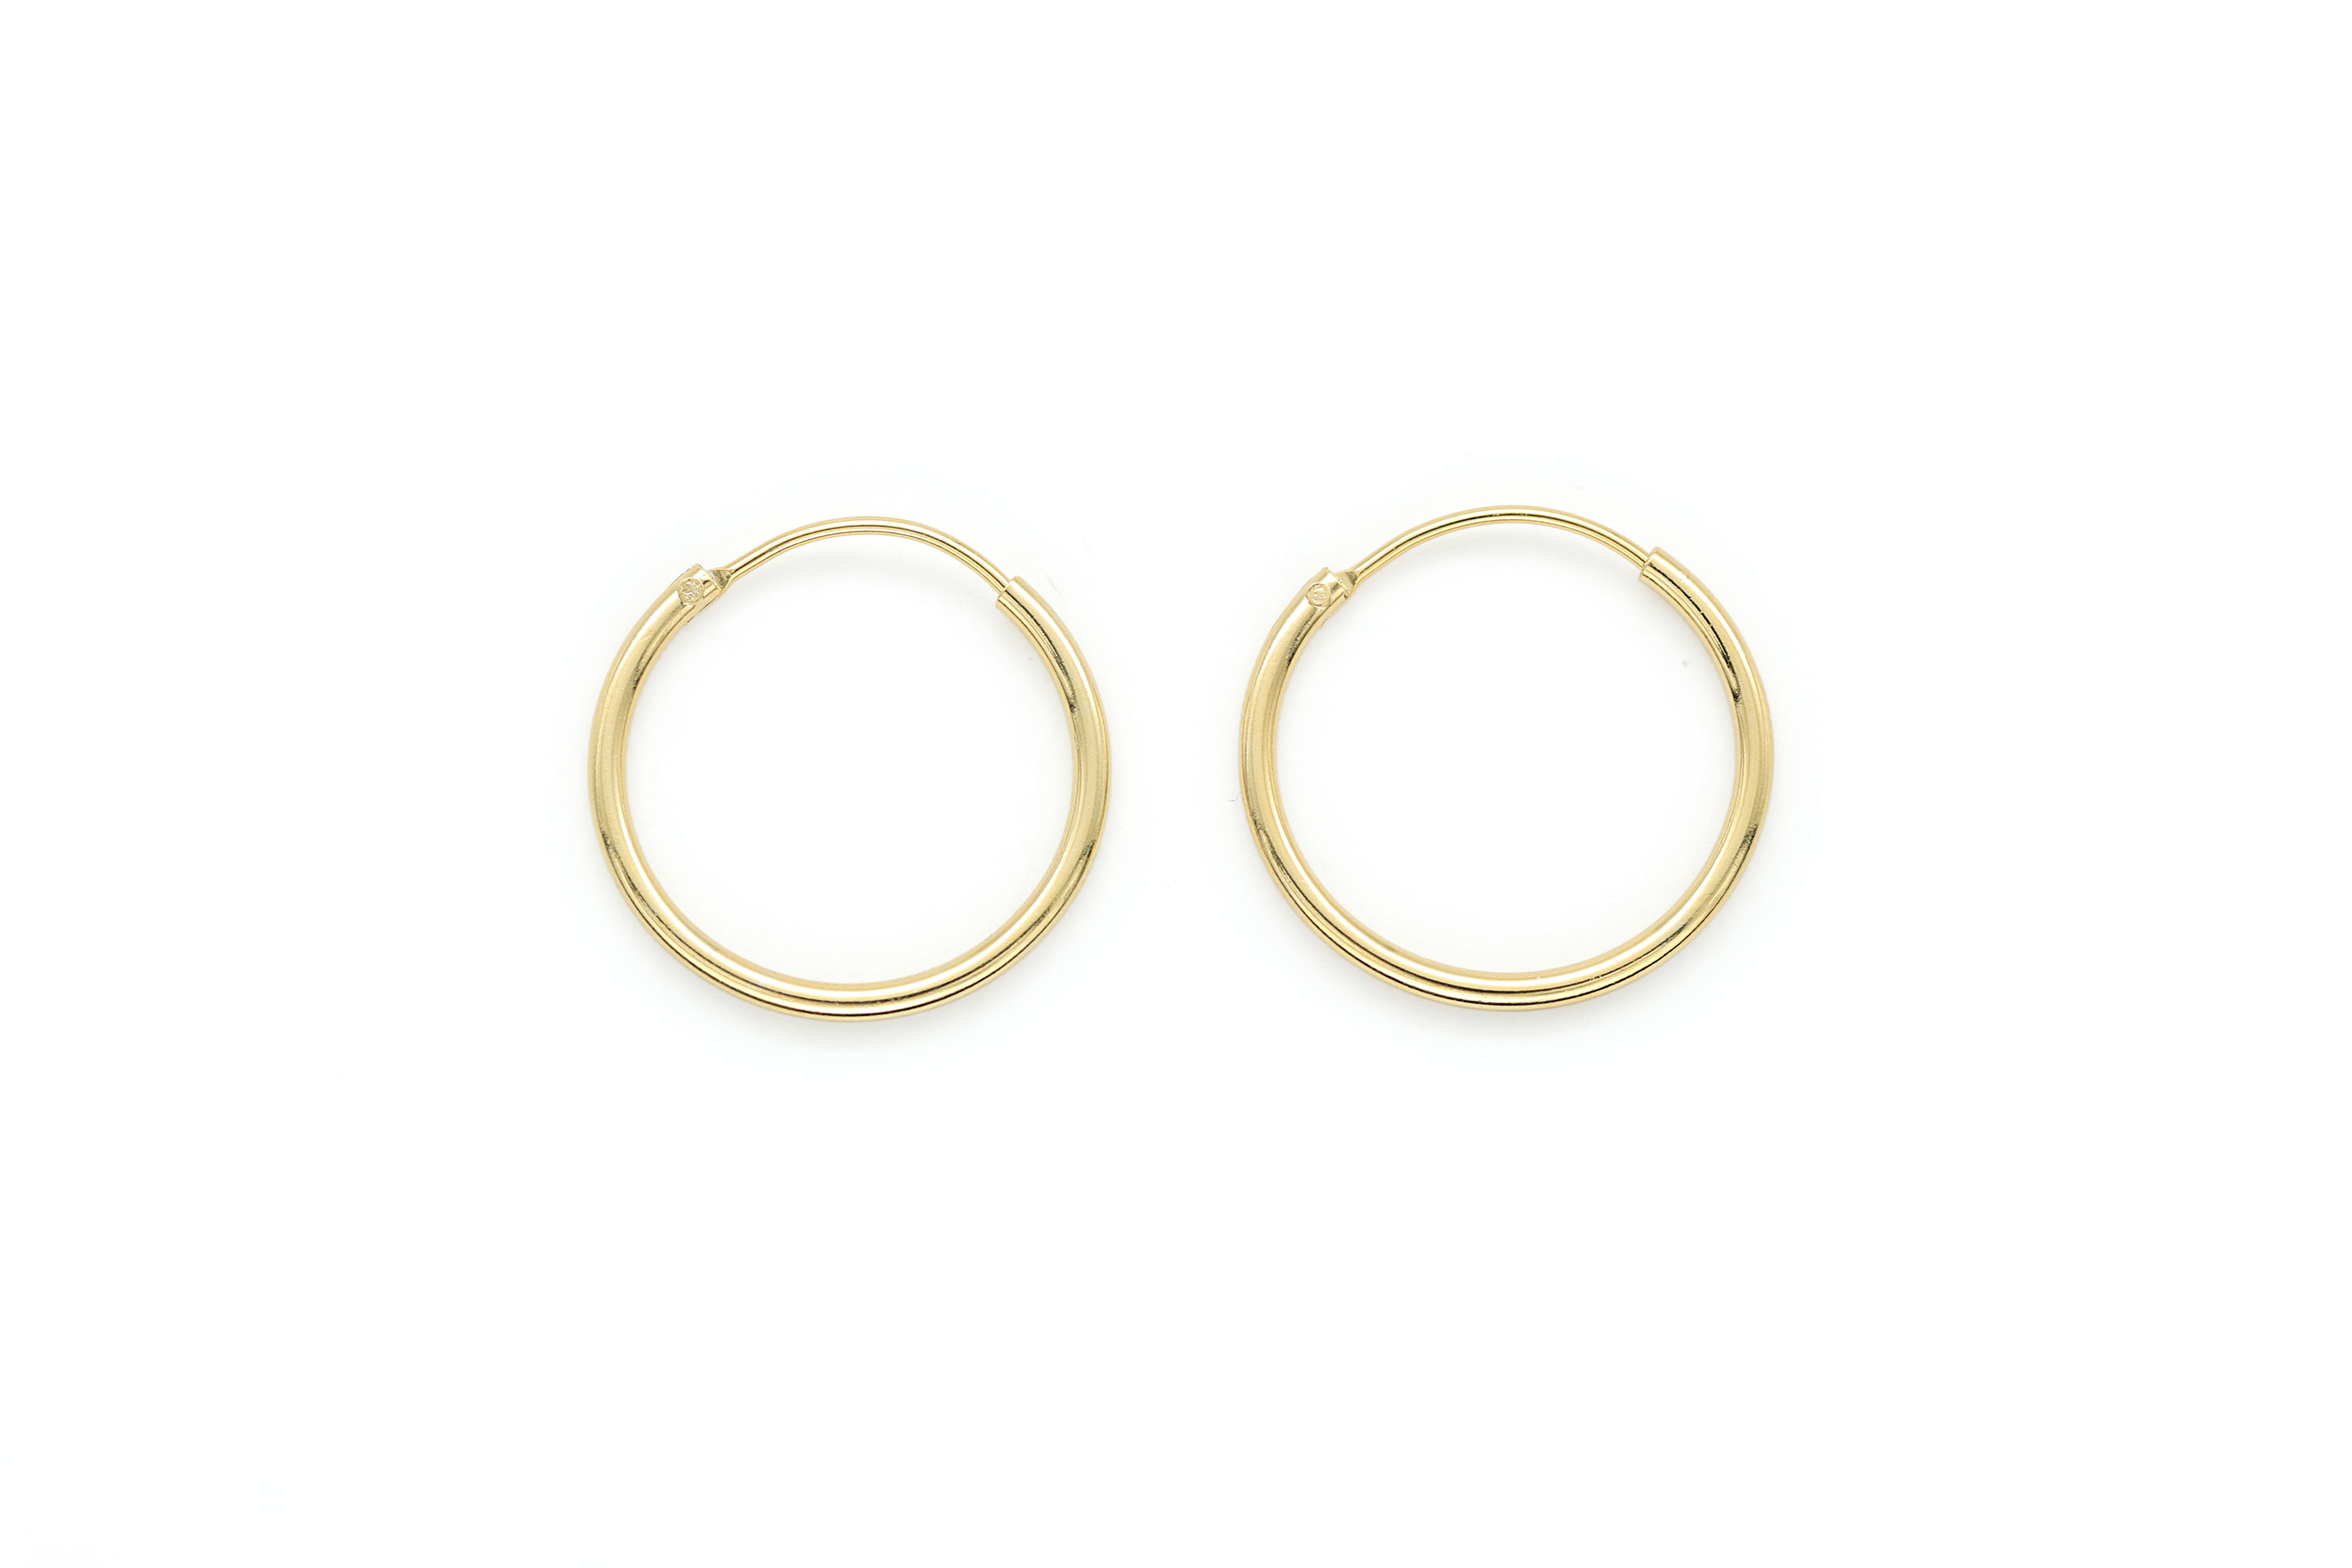 20mm round hoop earrings, T65-R6